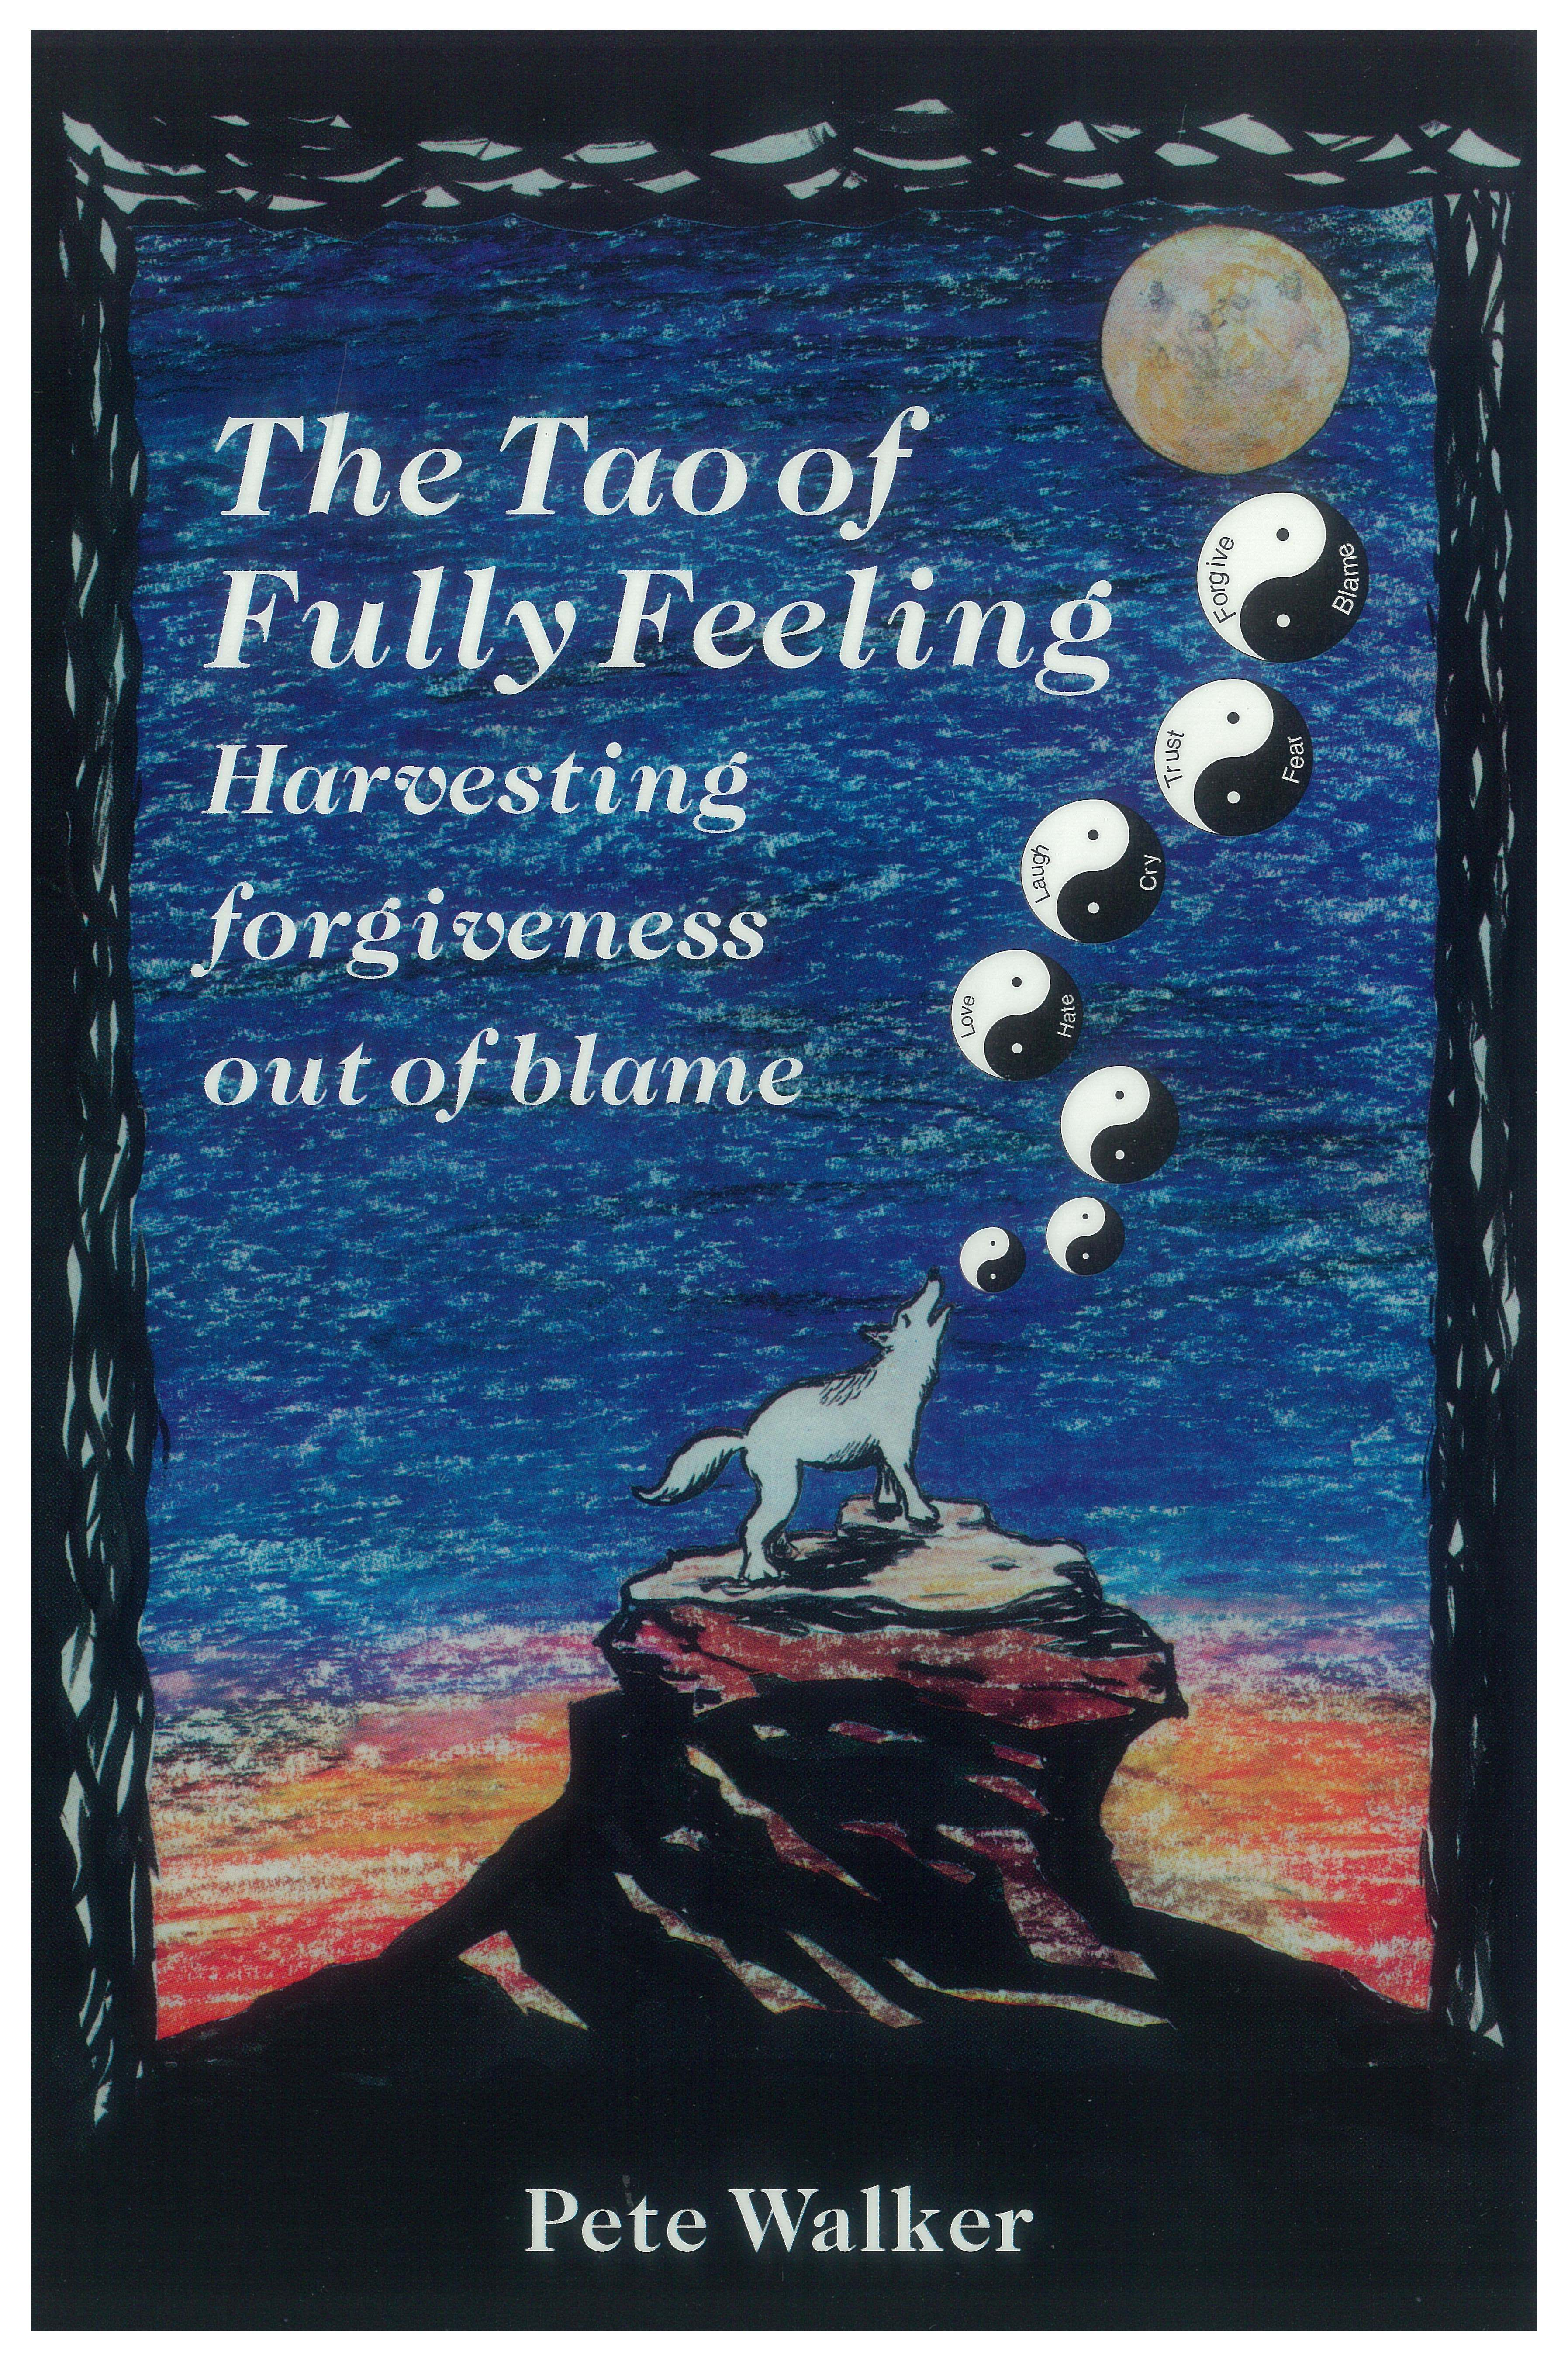 The Tao of Fully Feeling